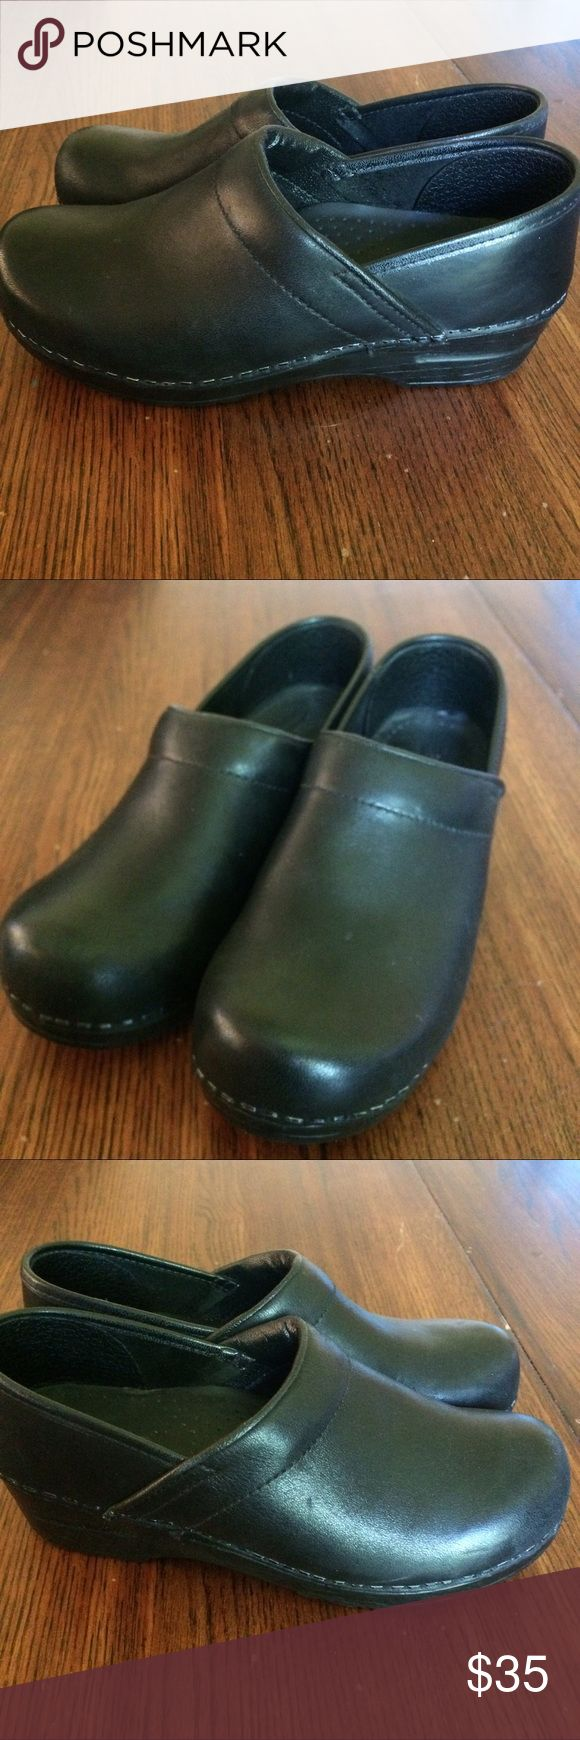 Sanita clogs professional / nursing shoes Great condition! Very lightly worn Sanita clogs. Great support for all day wear!!! Sanita Shoes Mules & Clogs